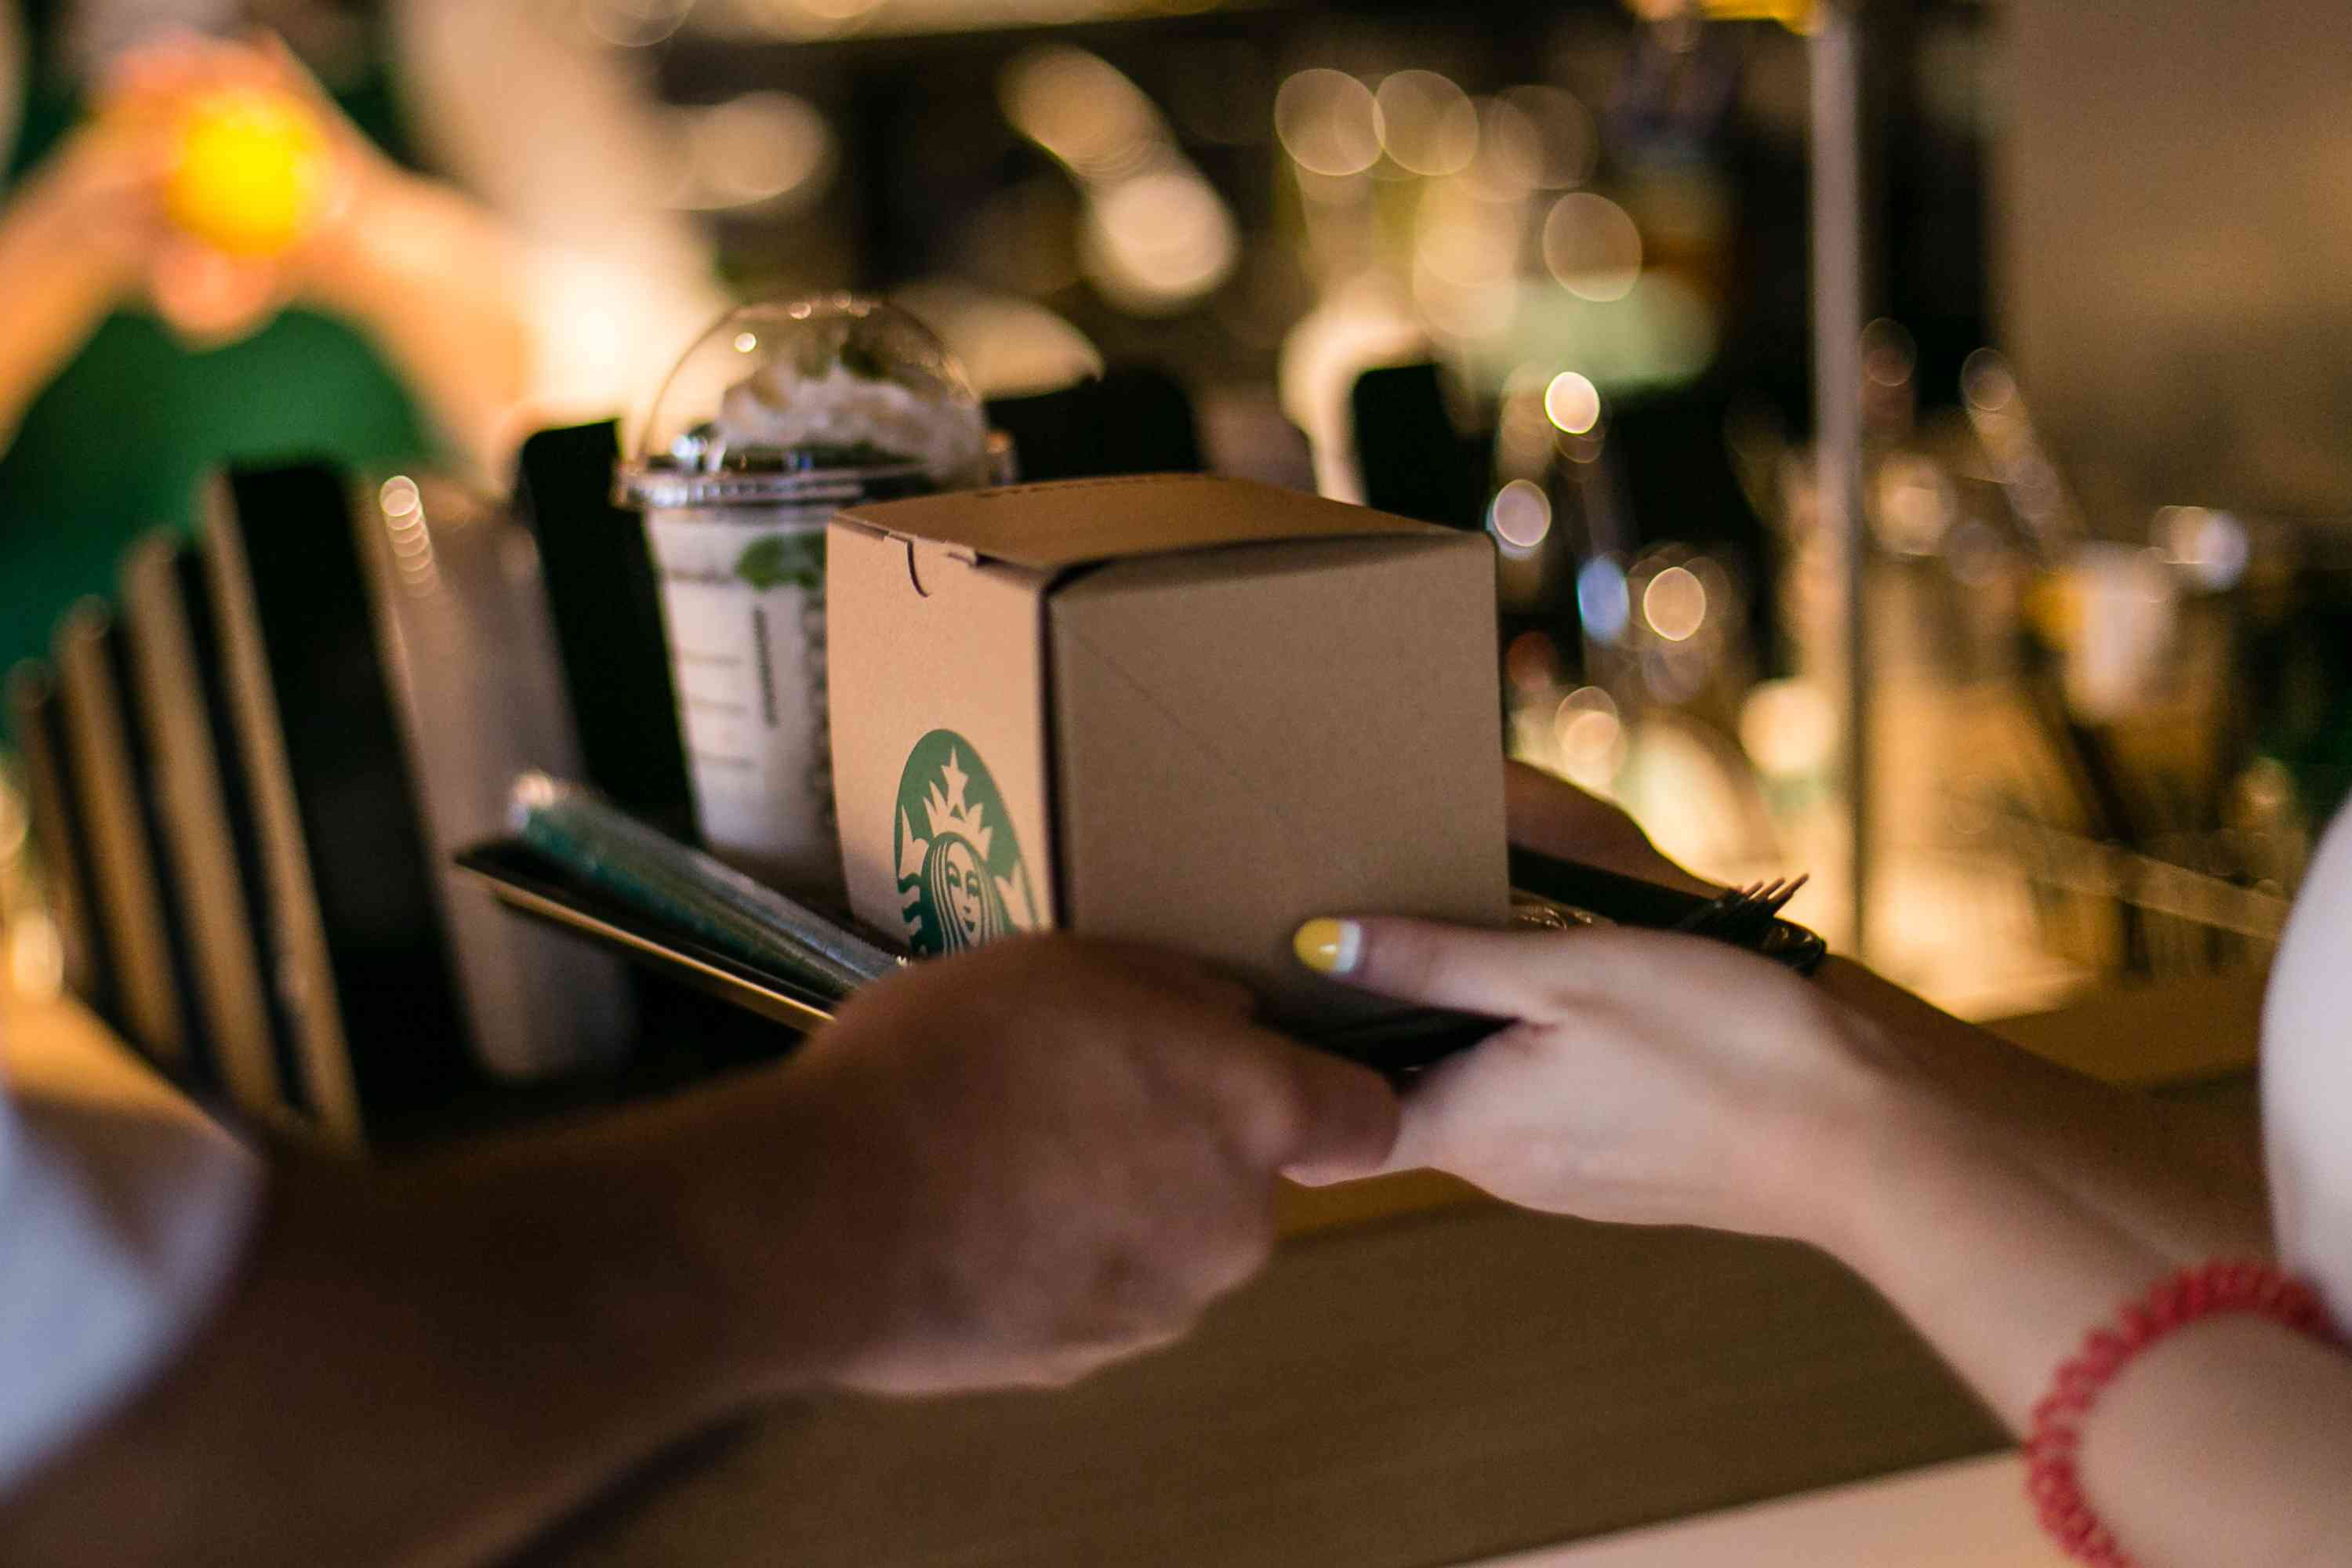 Starbucks Opens Tatami-matted Tea-house Style Store In Historic Kyoto